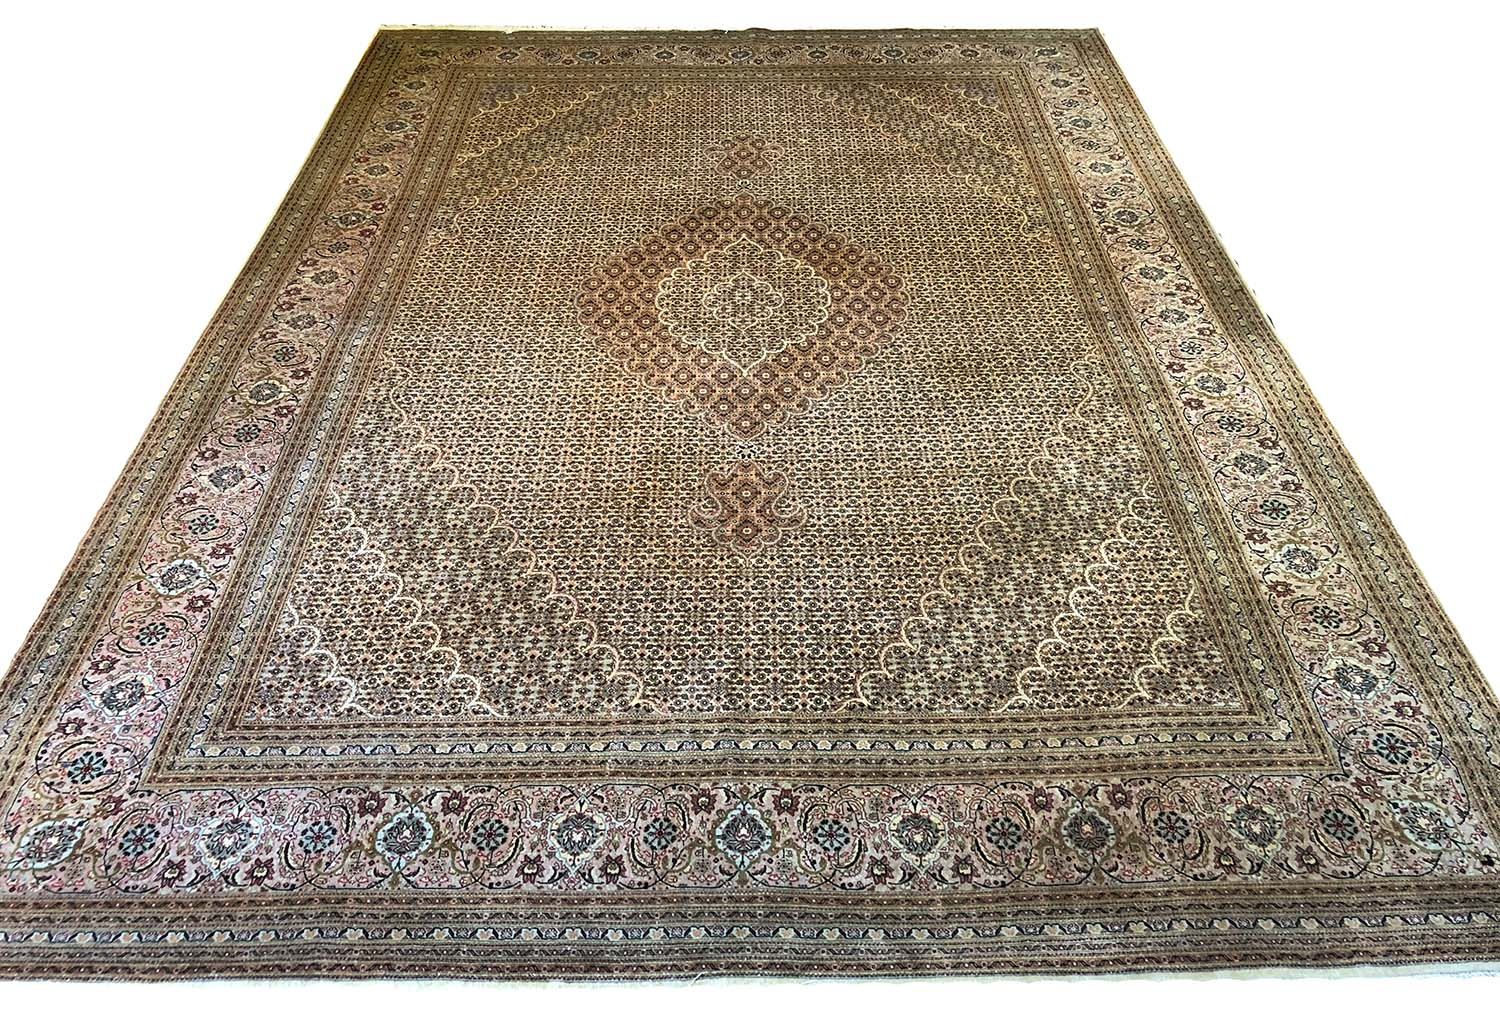 Very Fine Persian Tabriz Mahi Design Carpet 346cm X 252cm Part Silk Concentric Fields Within Complimentary Spandrels And Borders